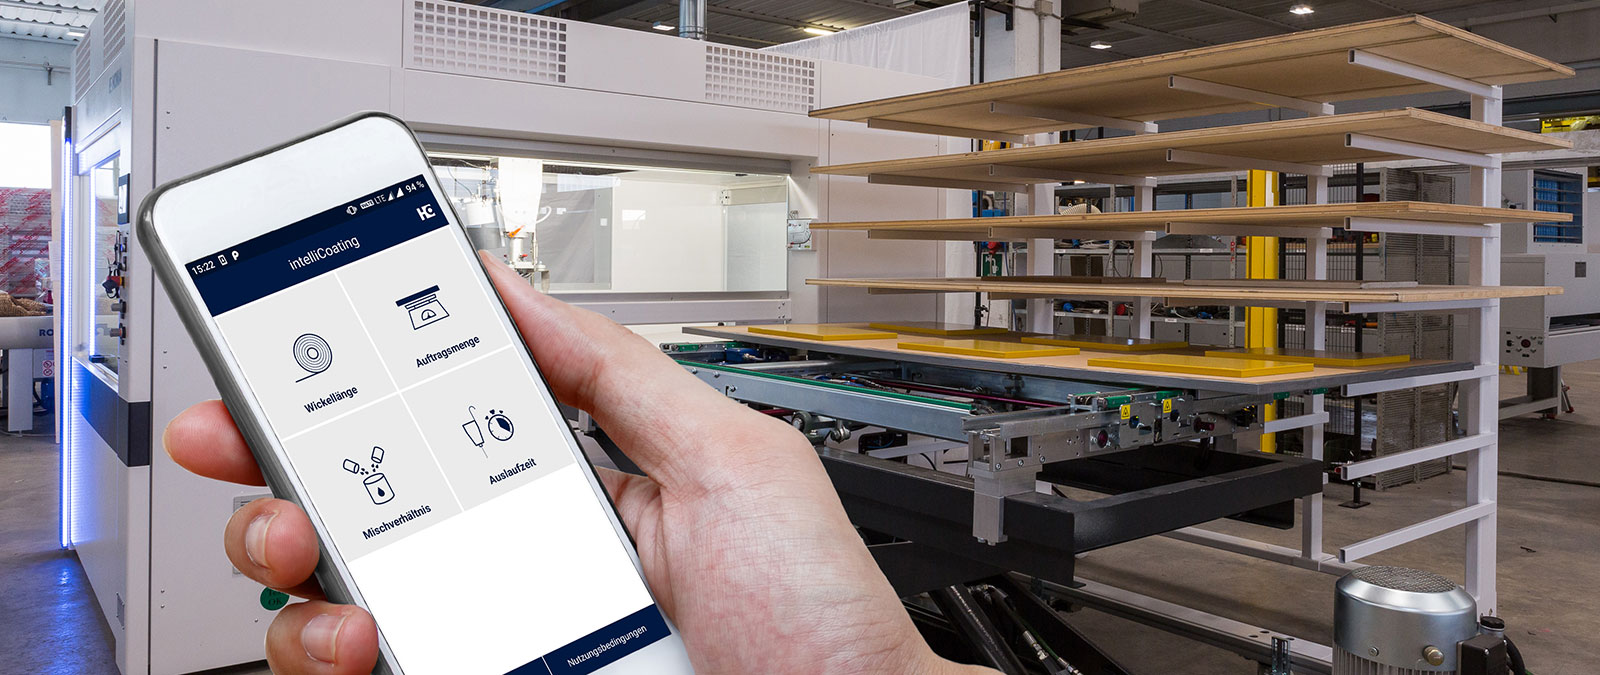 IntelliCoating App - The digital multifunction tool for all coating system operators